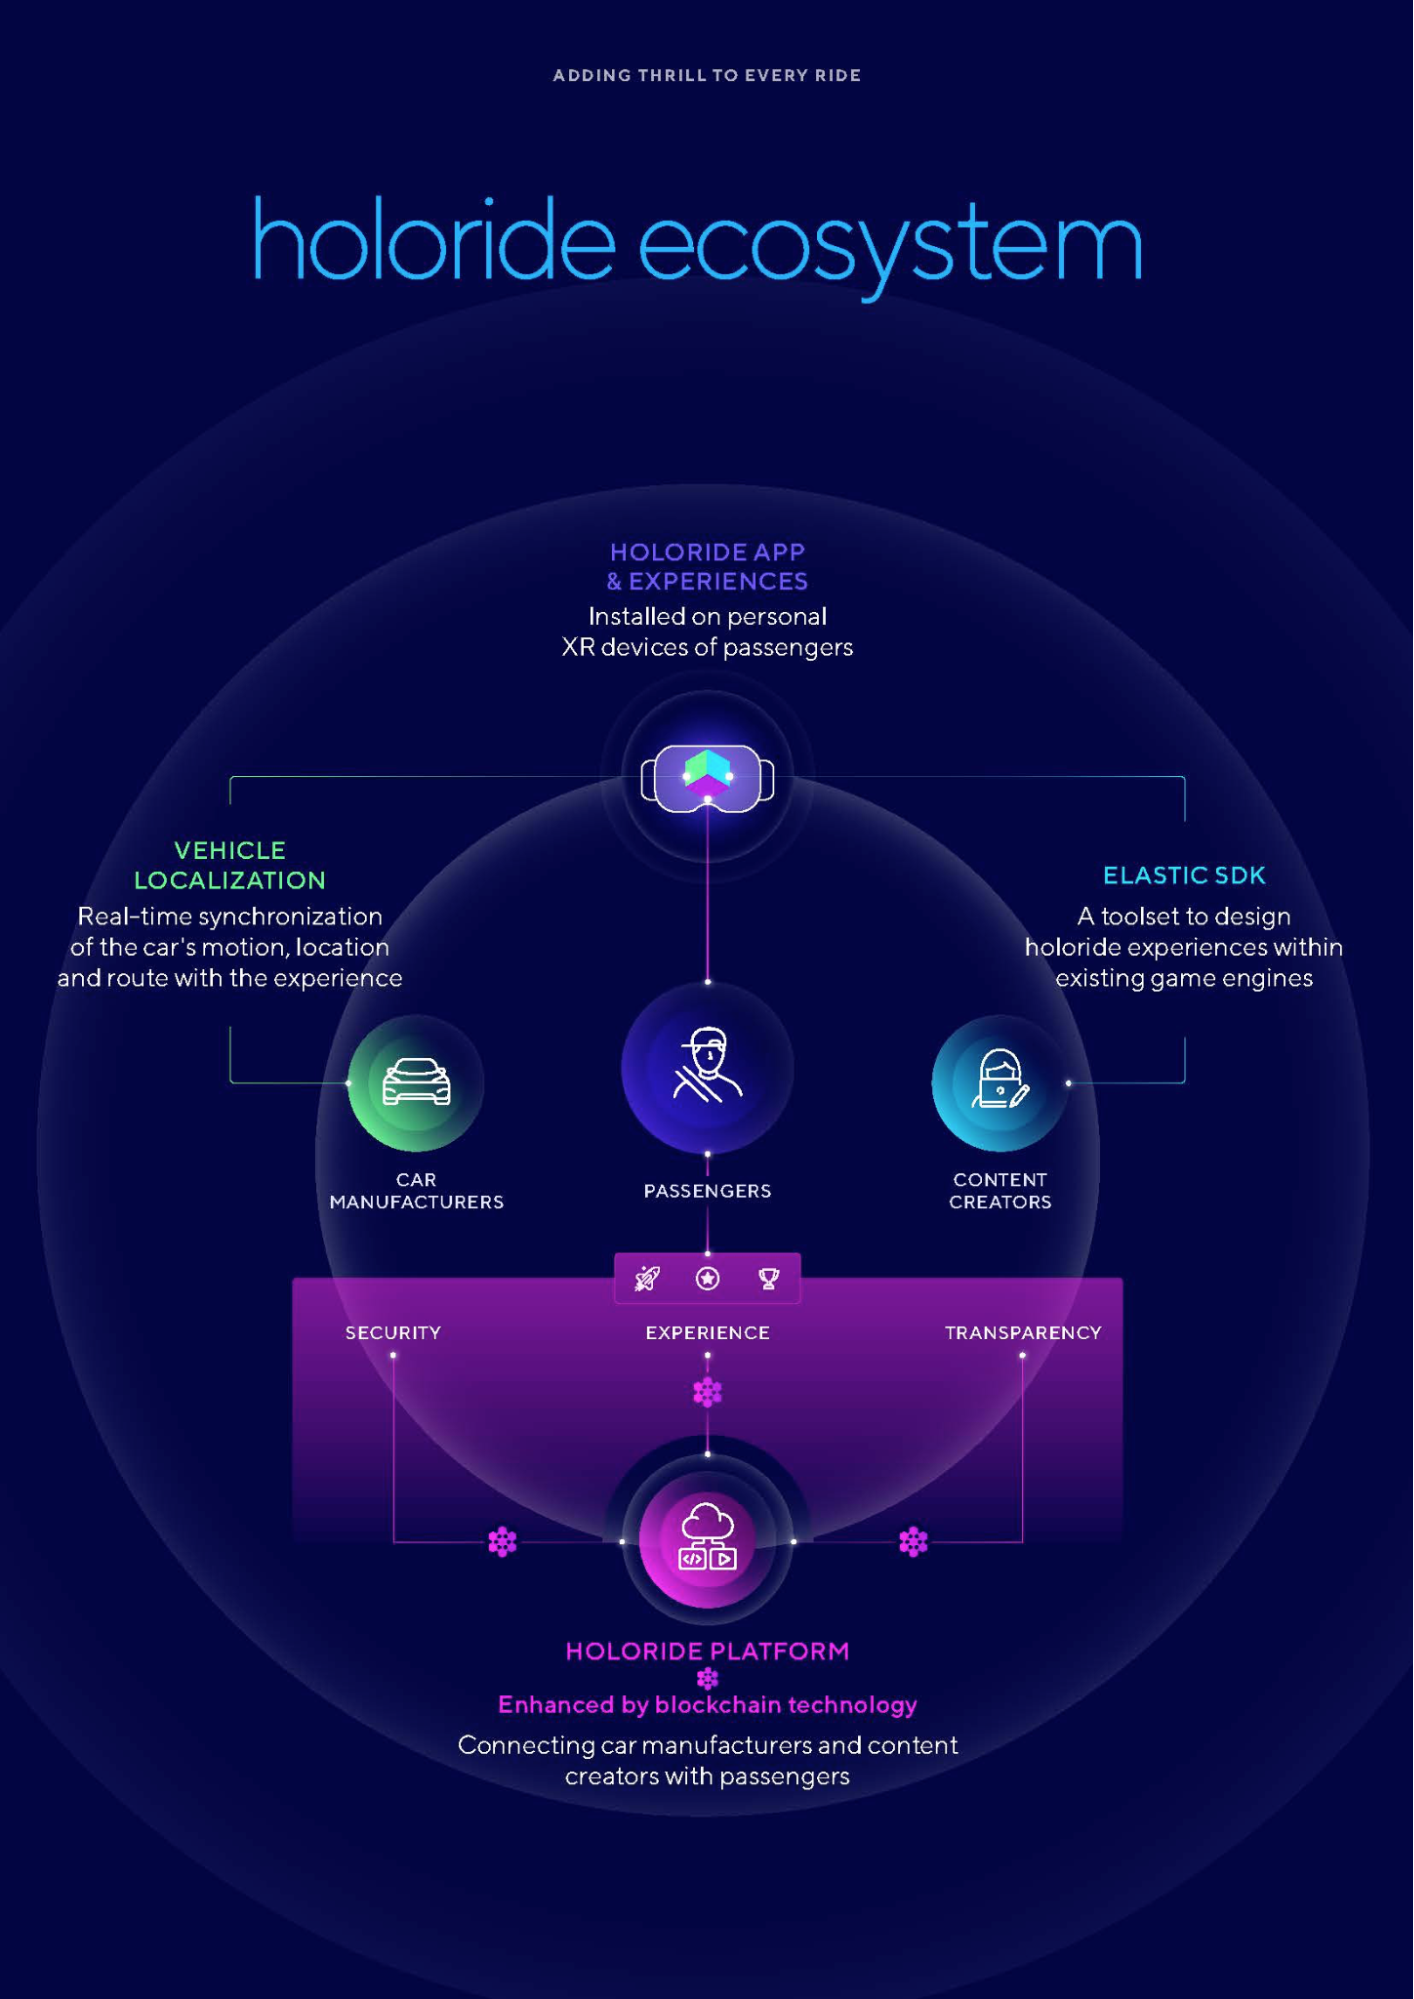 Futuristic looking infographic in purple and blue hues that describes the structure of the holoride ecosystem